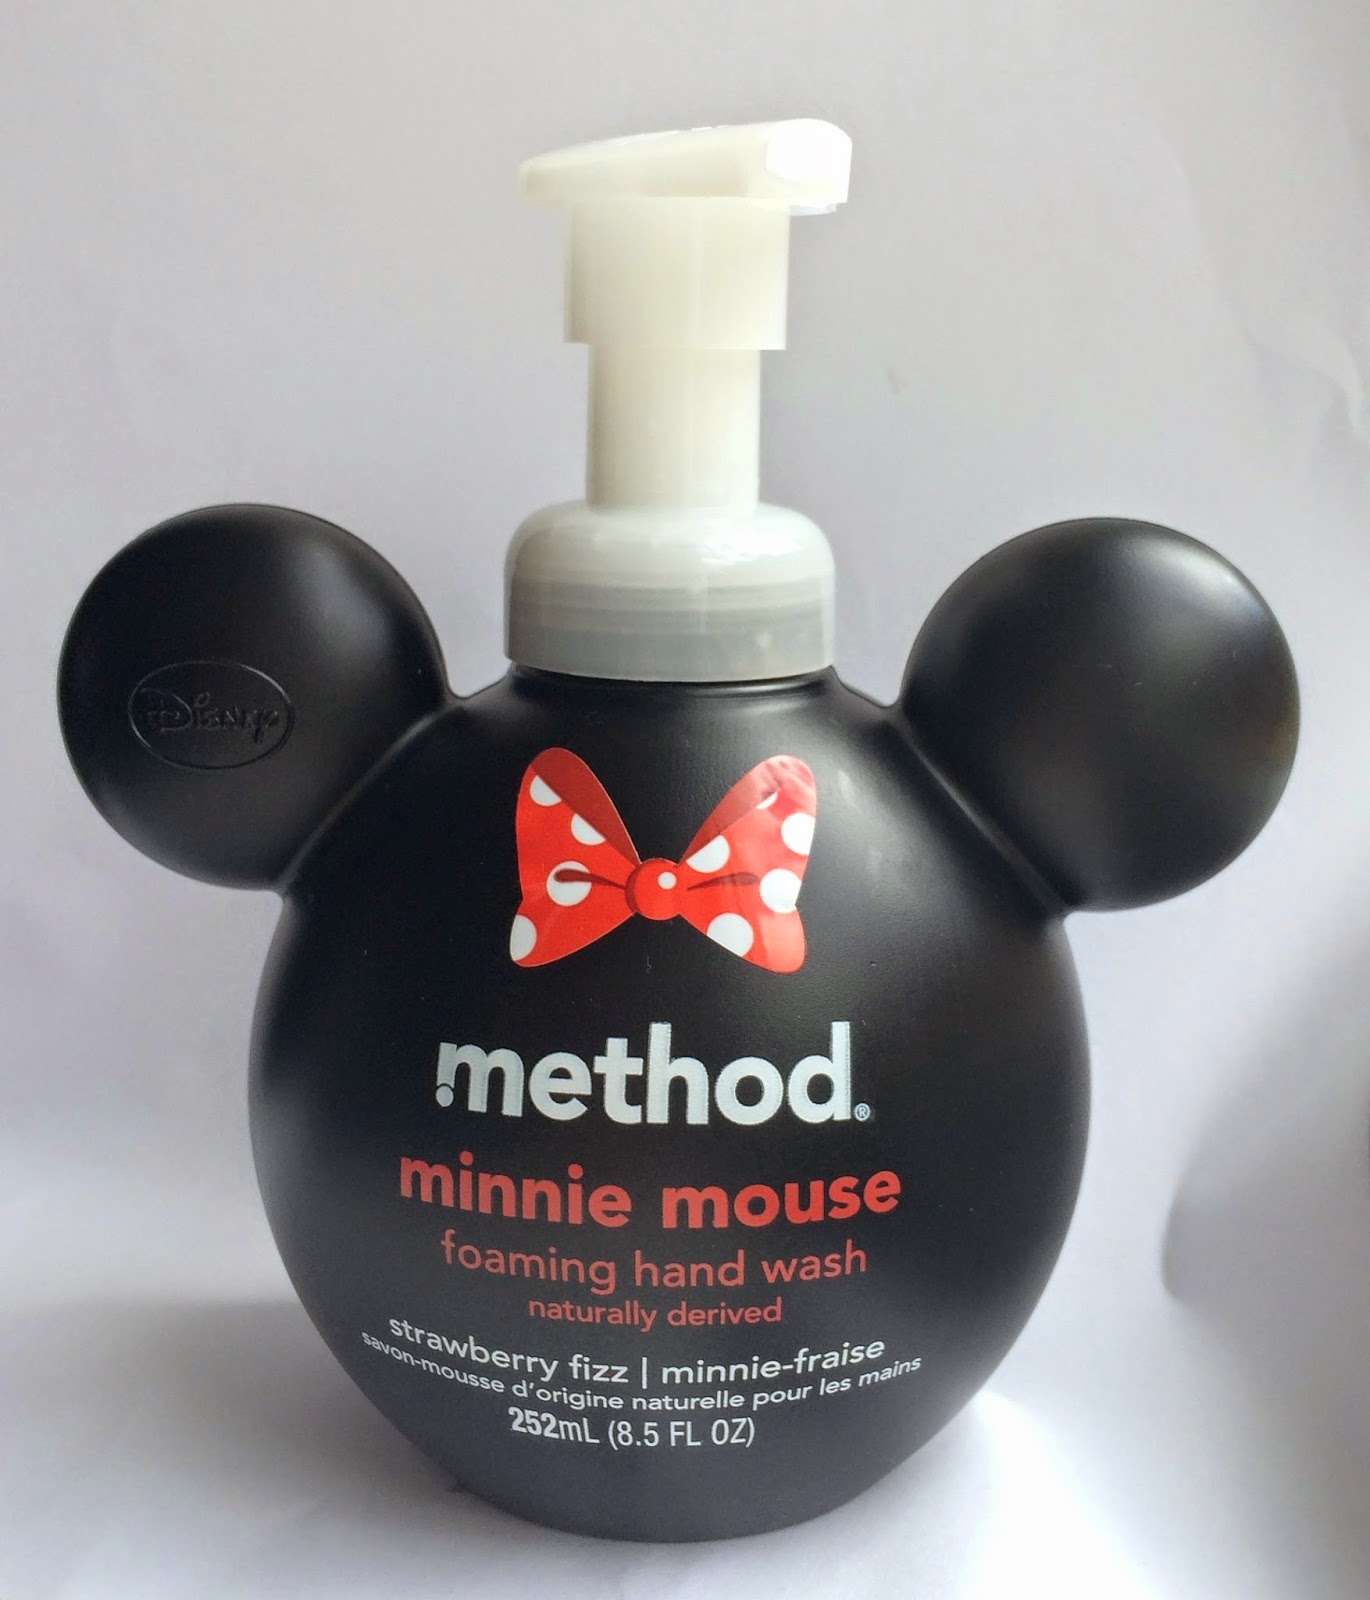 method-strawberry-fizz-foam-wash-minnie-mouse